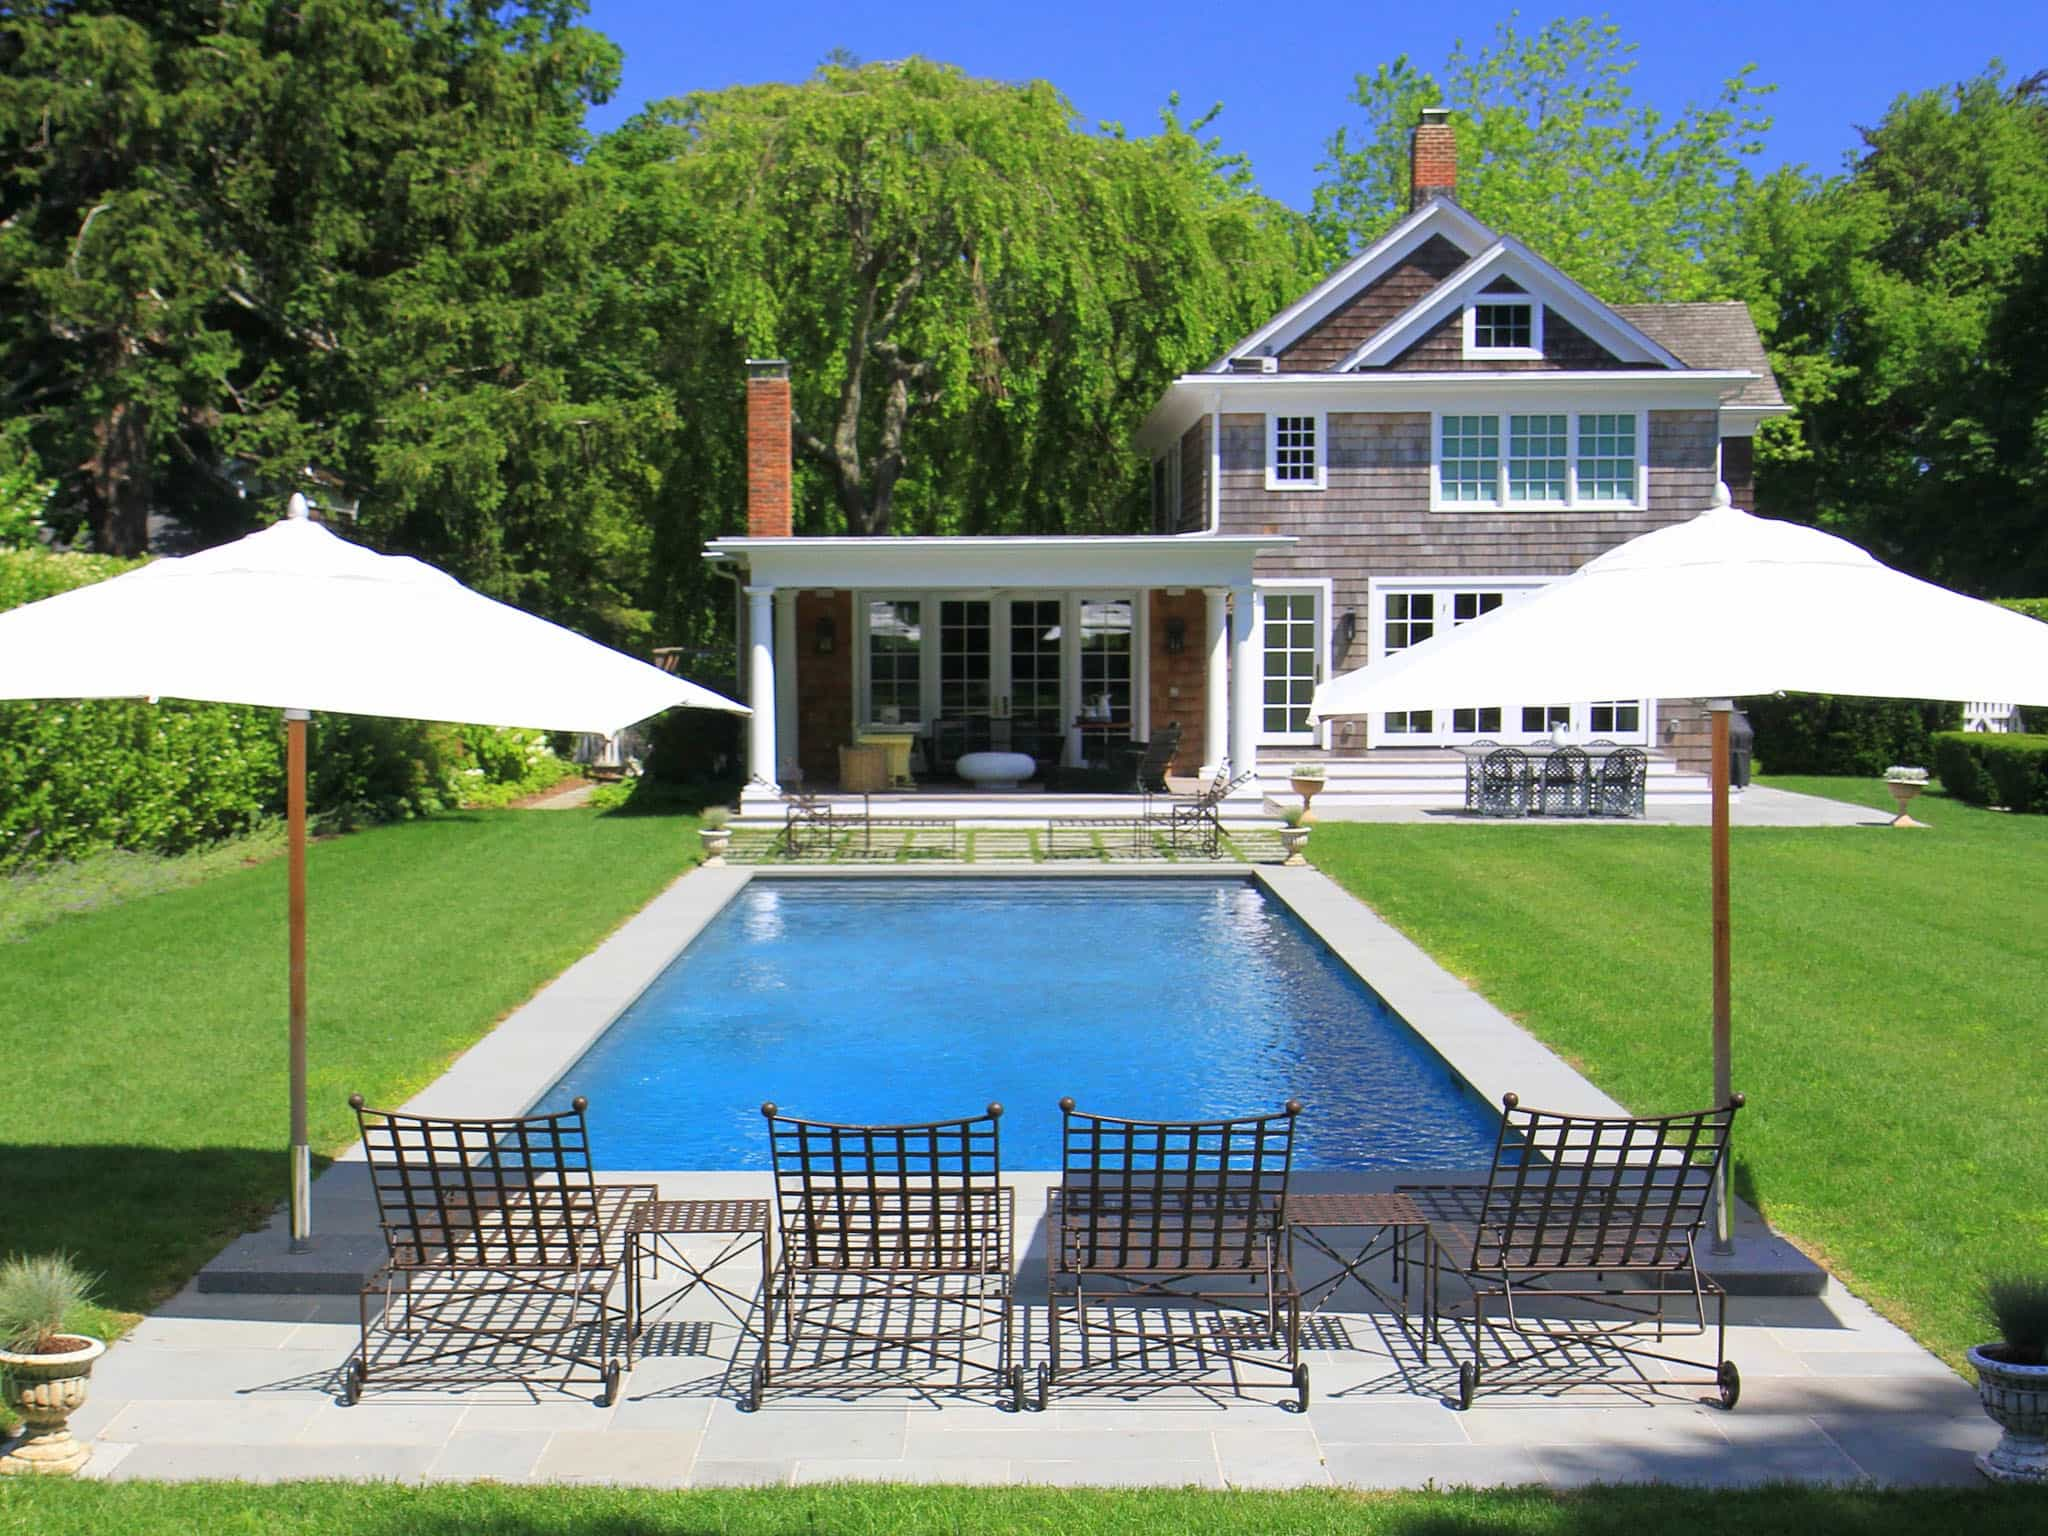 Featured Image of Backyard Space With Traditional Pool And Outdoor Seating